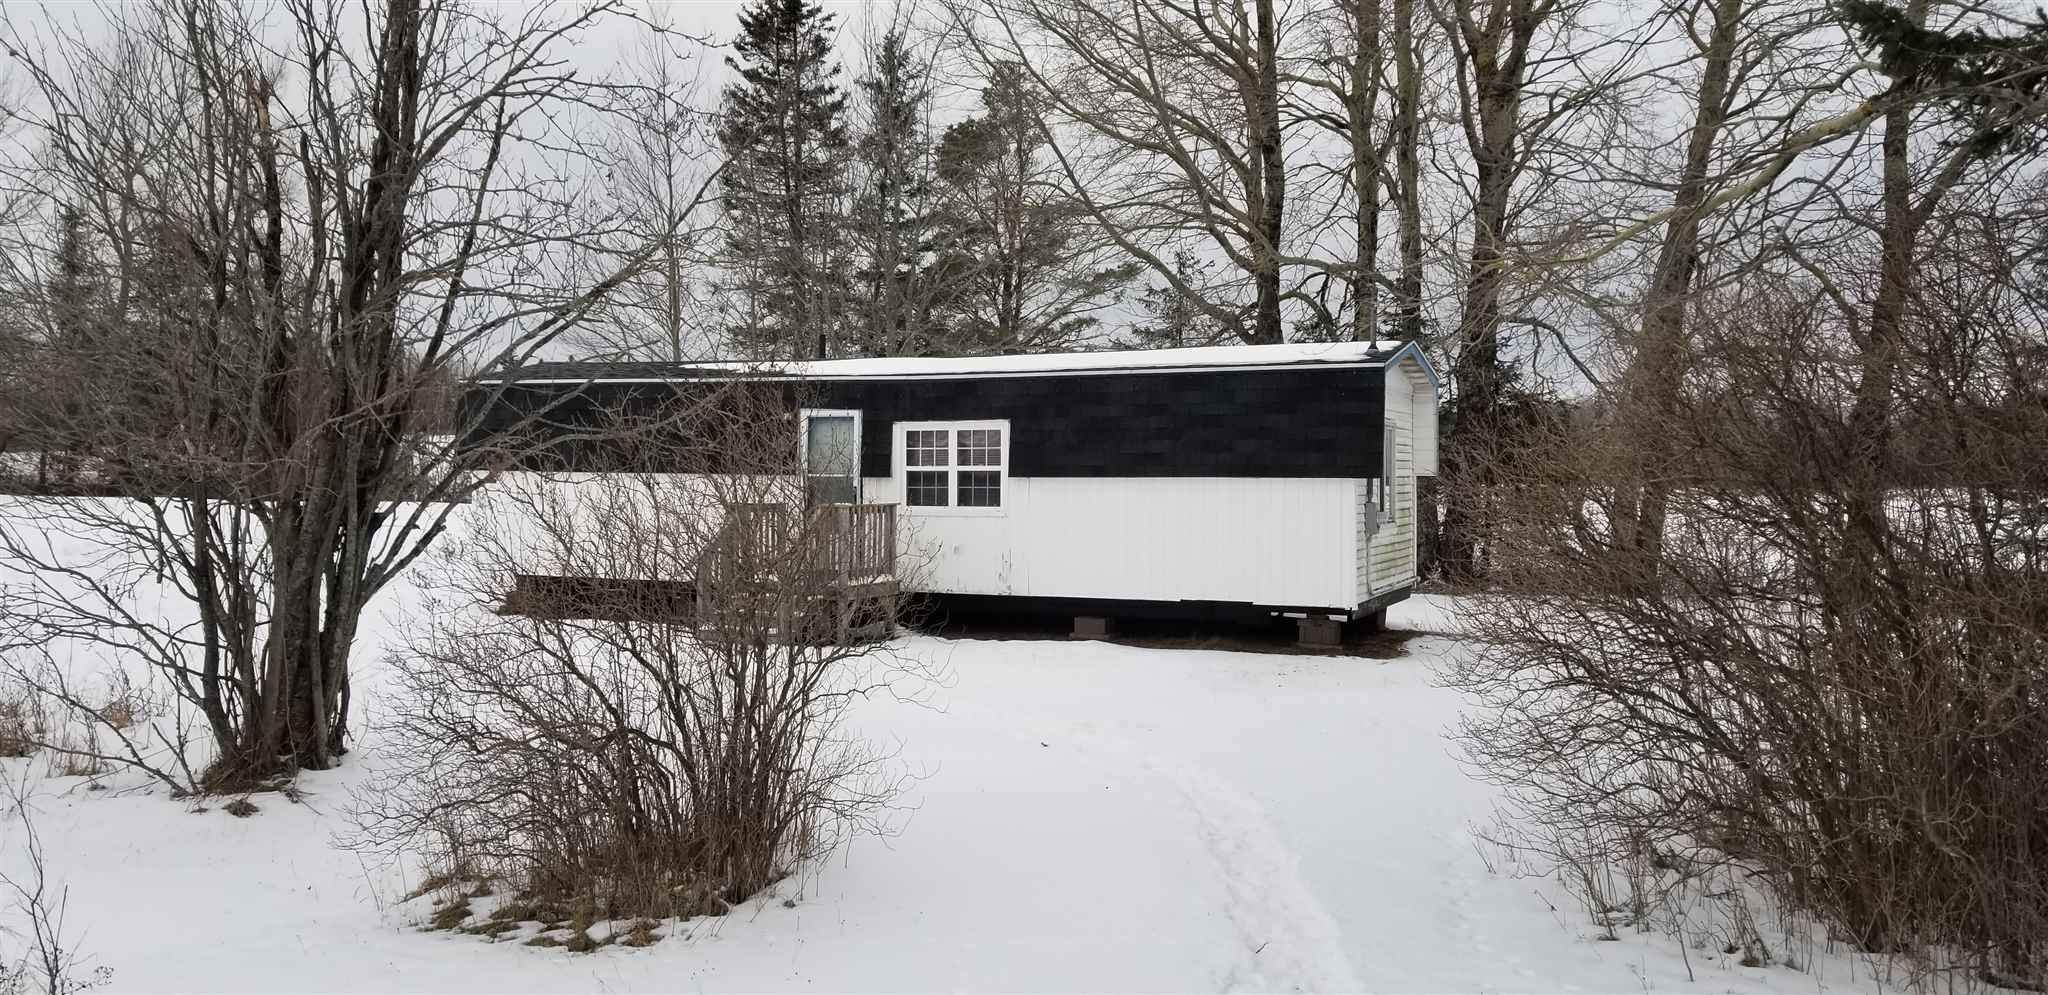 Main Photo: 3933 6 Highway in Amherst Head: 102N-North Of Hwy 104 Residential for sale (Northern Region)  : MLS®# 202102211